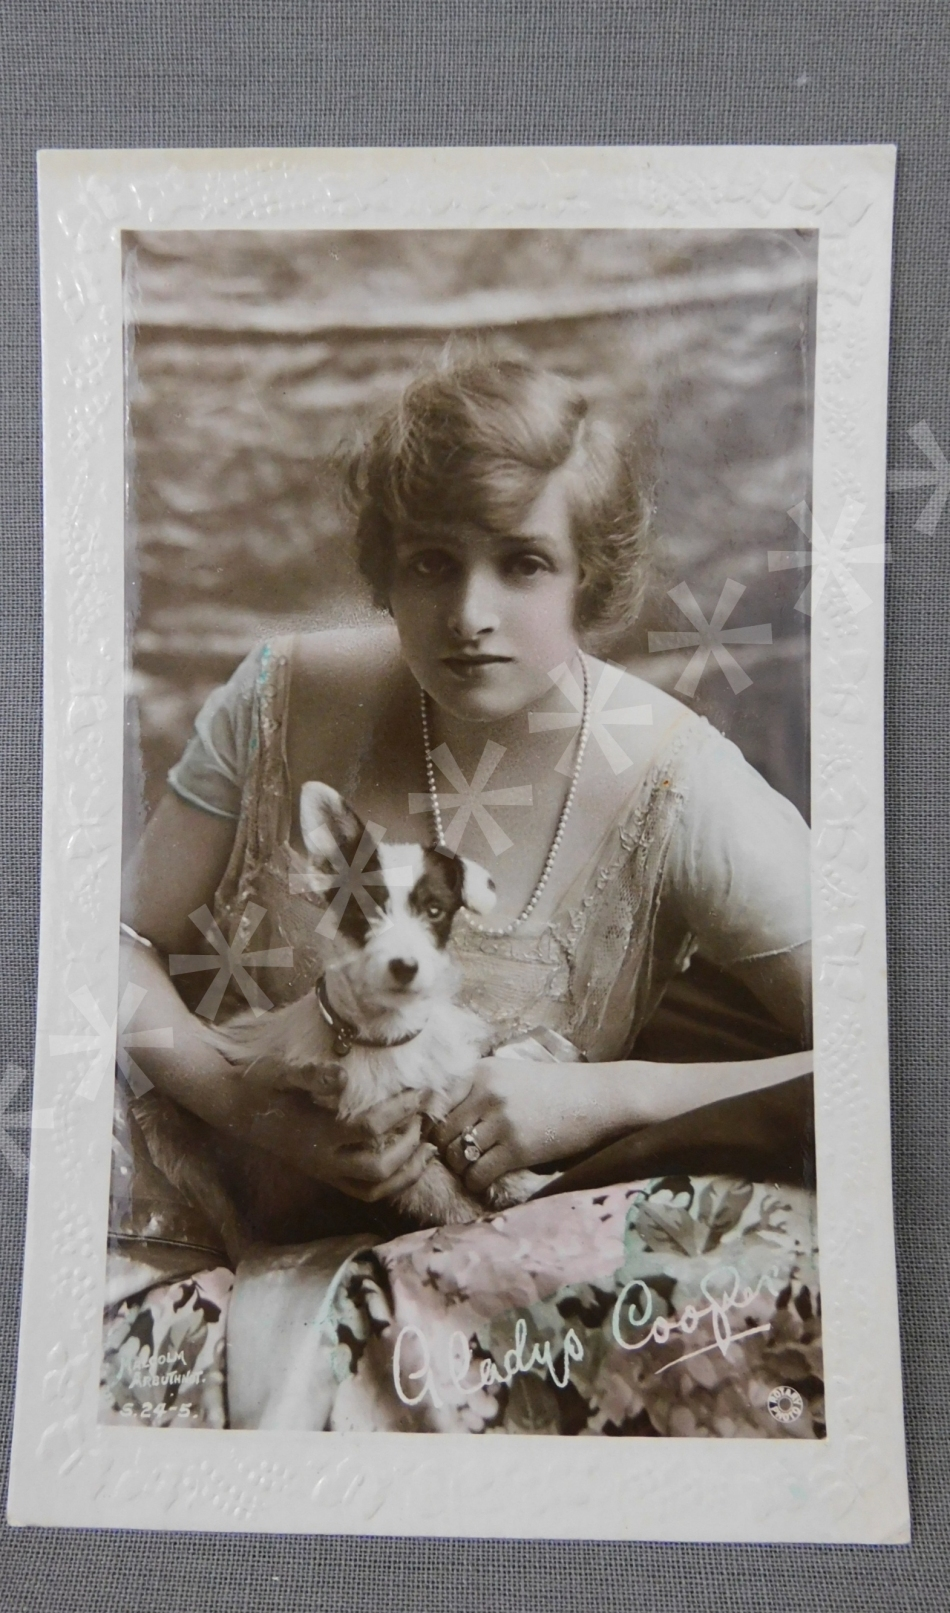 Vintage Gladys Cooper 1920s Photo Postcard, British Actress with Dog Handpainted